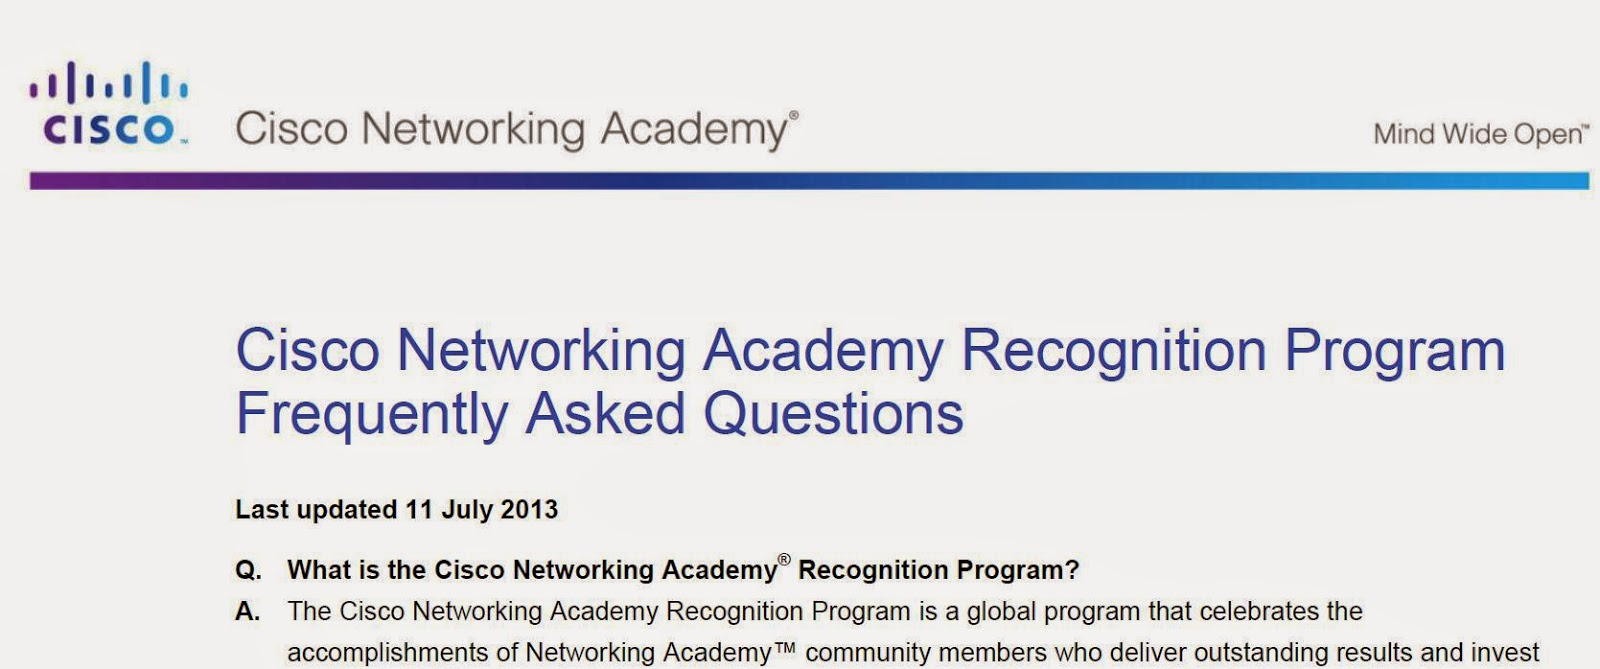 Cisco Networking Academy Recognition Program Frequently Asked Questions